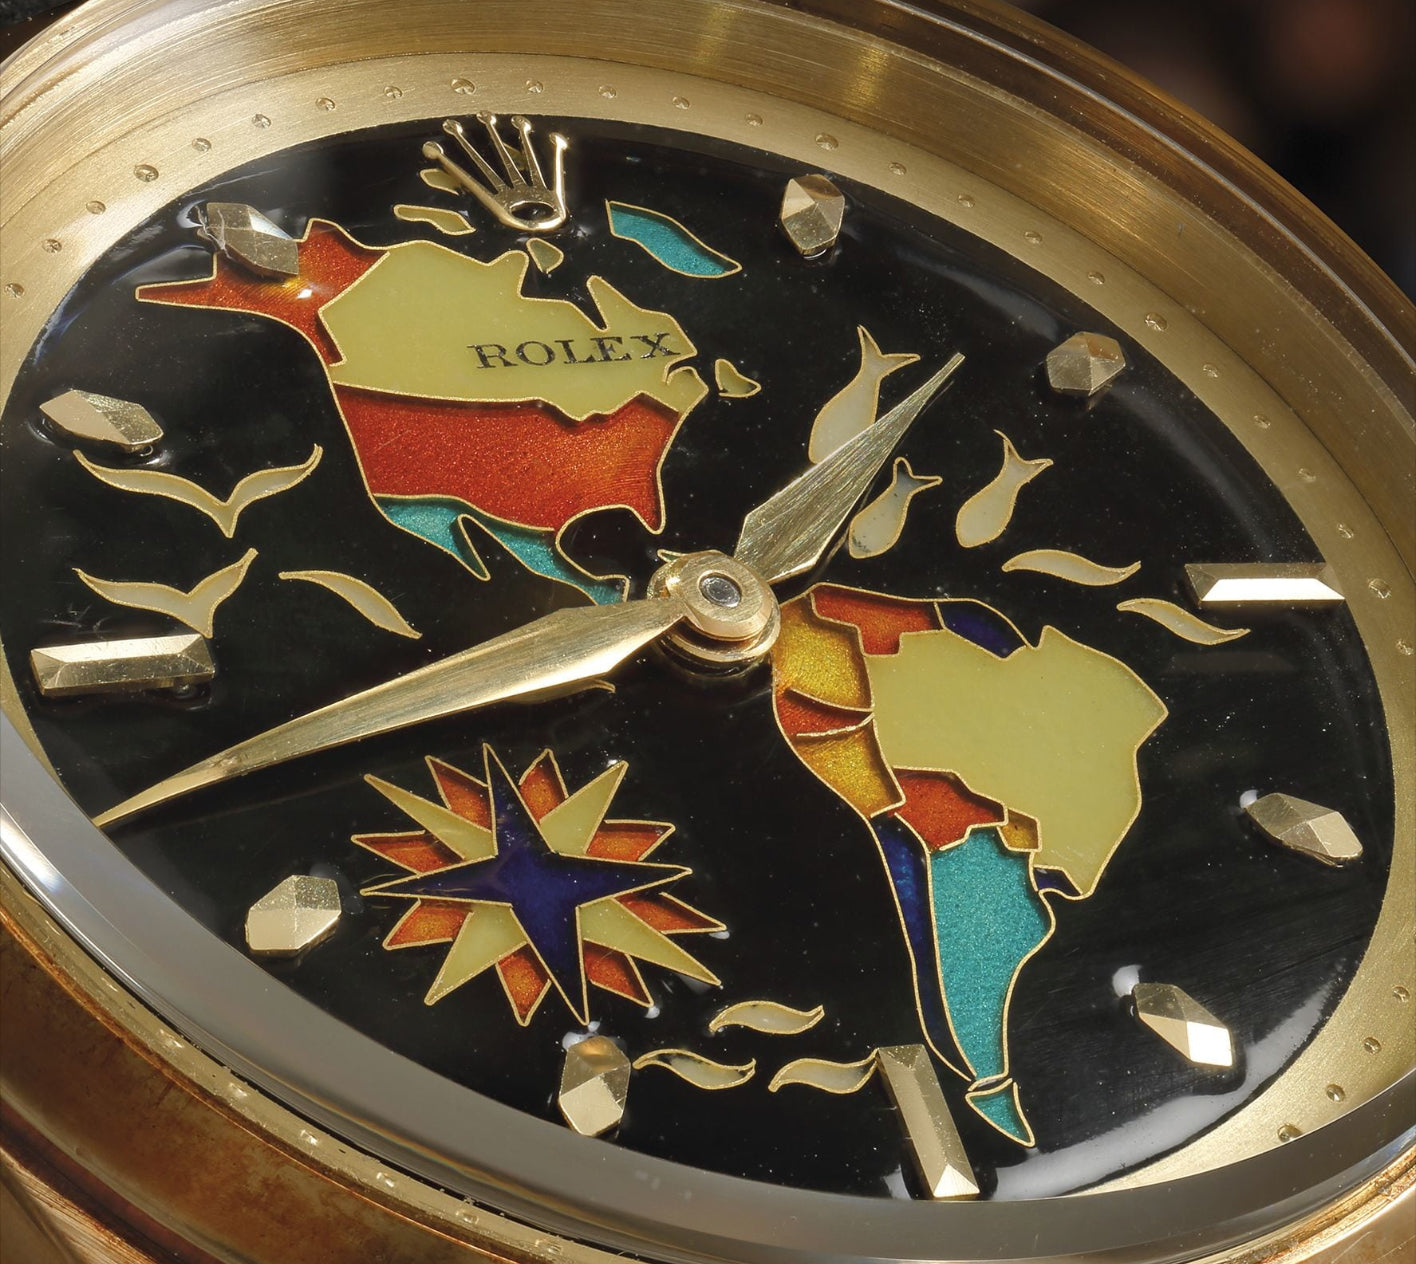 Rolex cloisonné enamel dial of the Americas in The Art of Enamel Dials for A Collected Man London